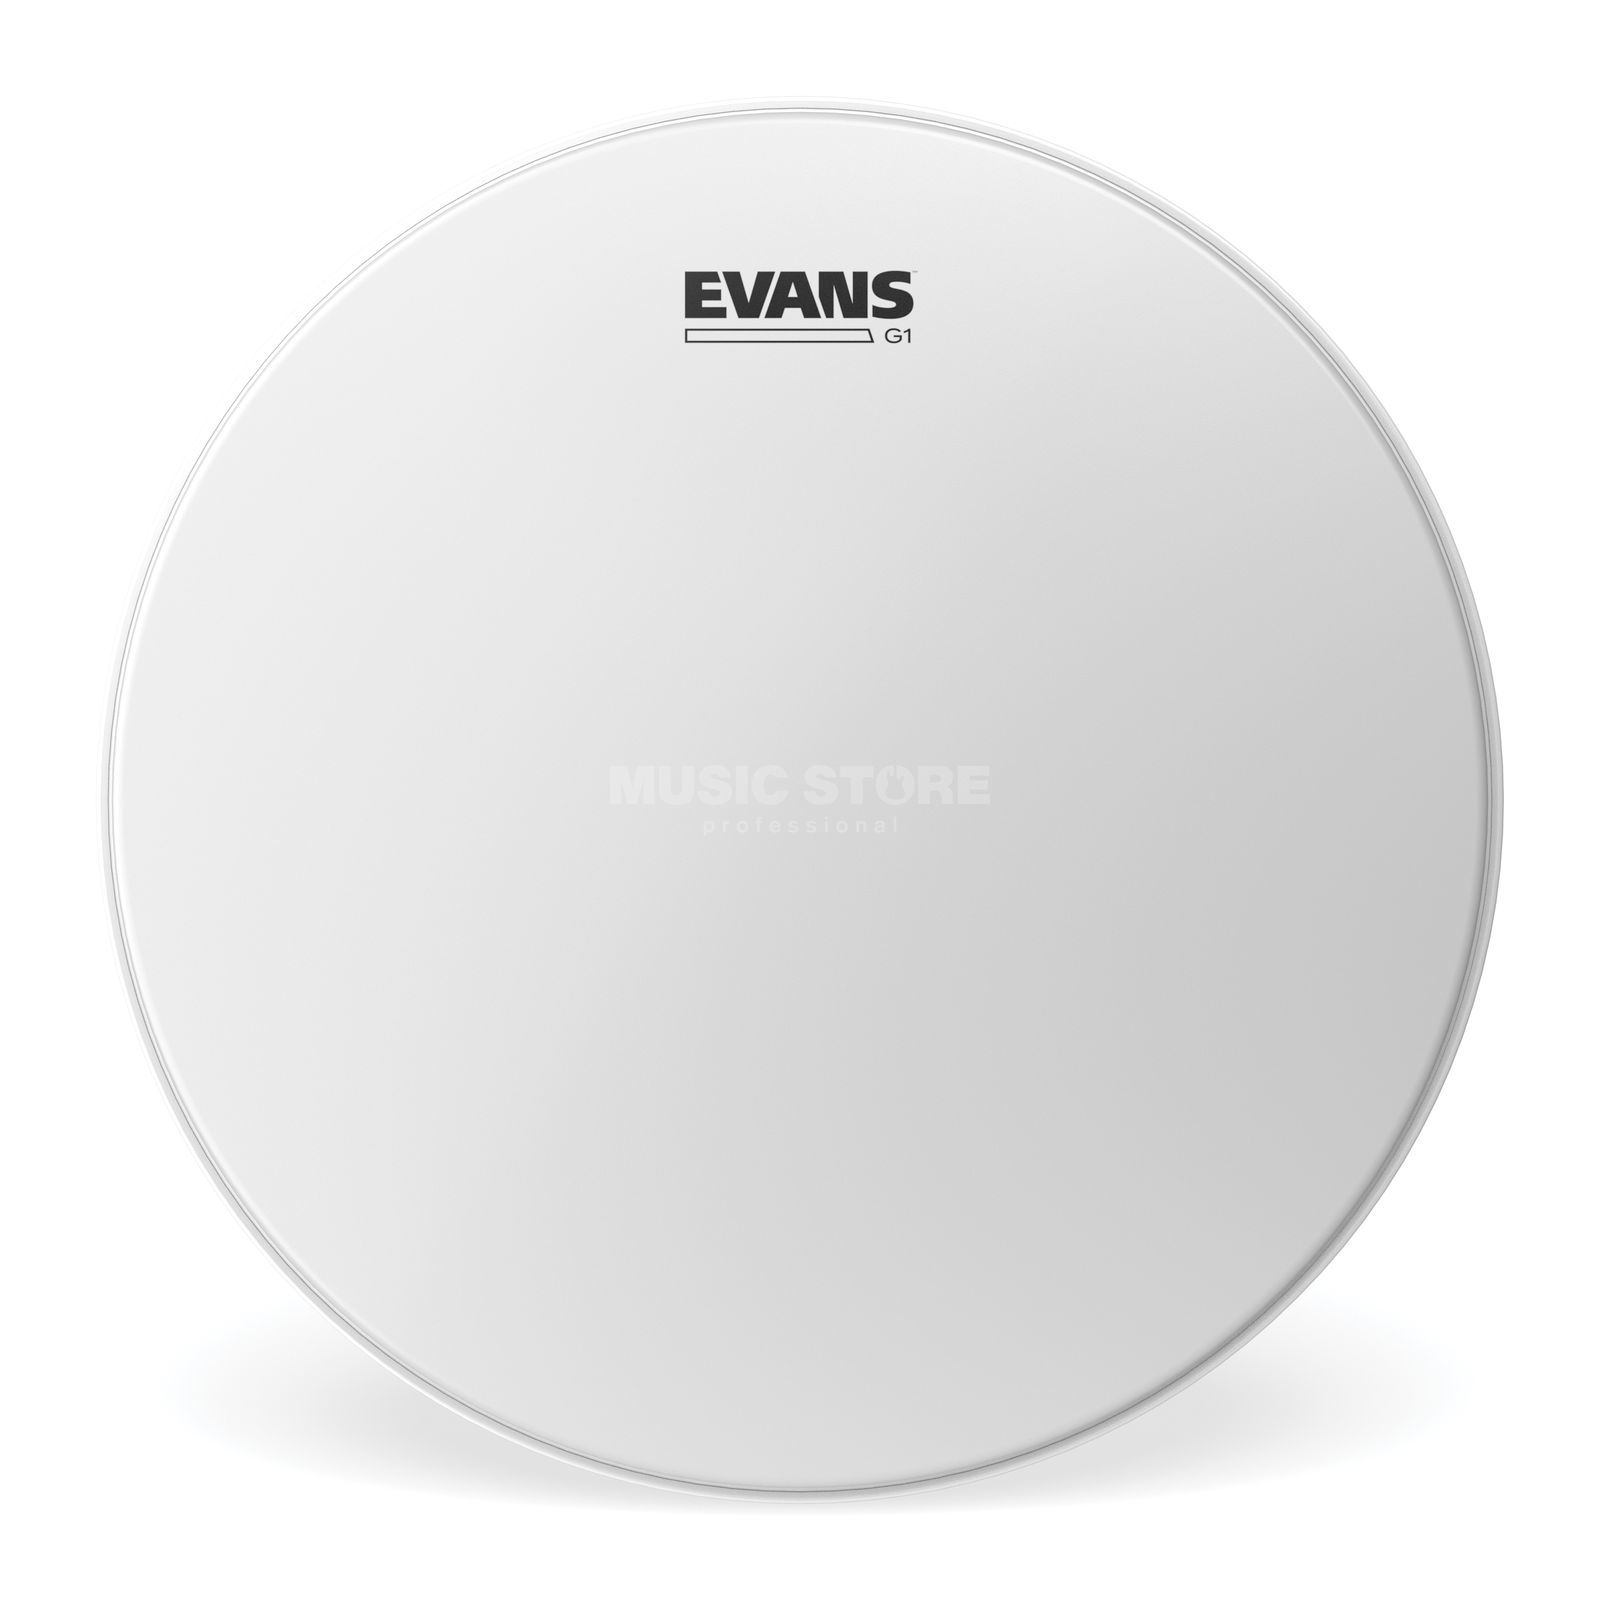 "Evans G1 Coated 15"", B15G1, Tom Batter Produktbillede"